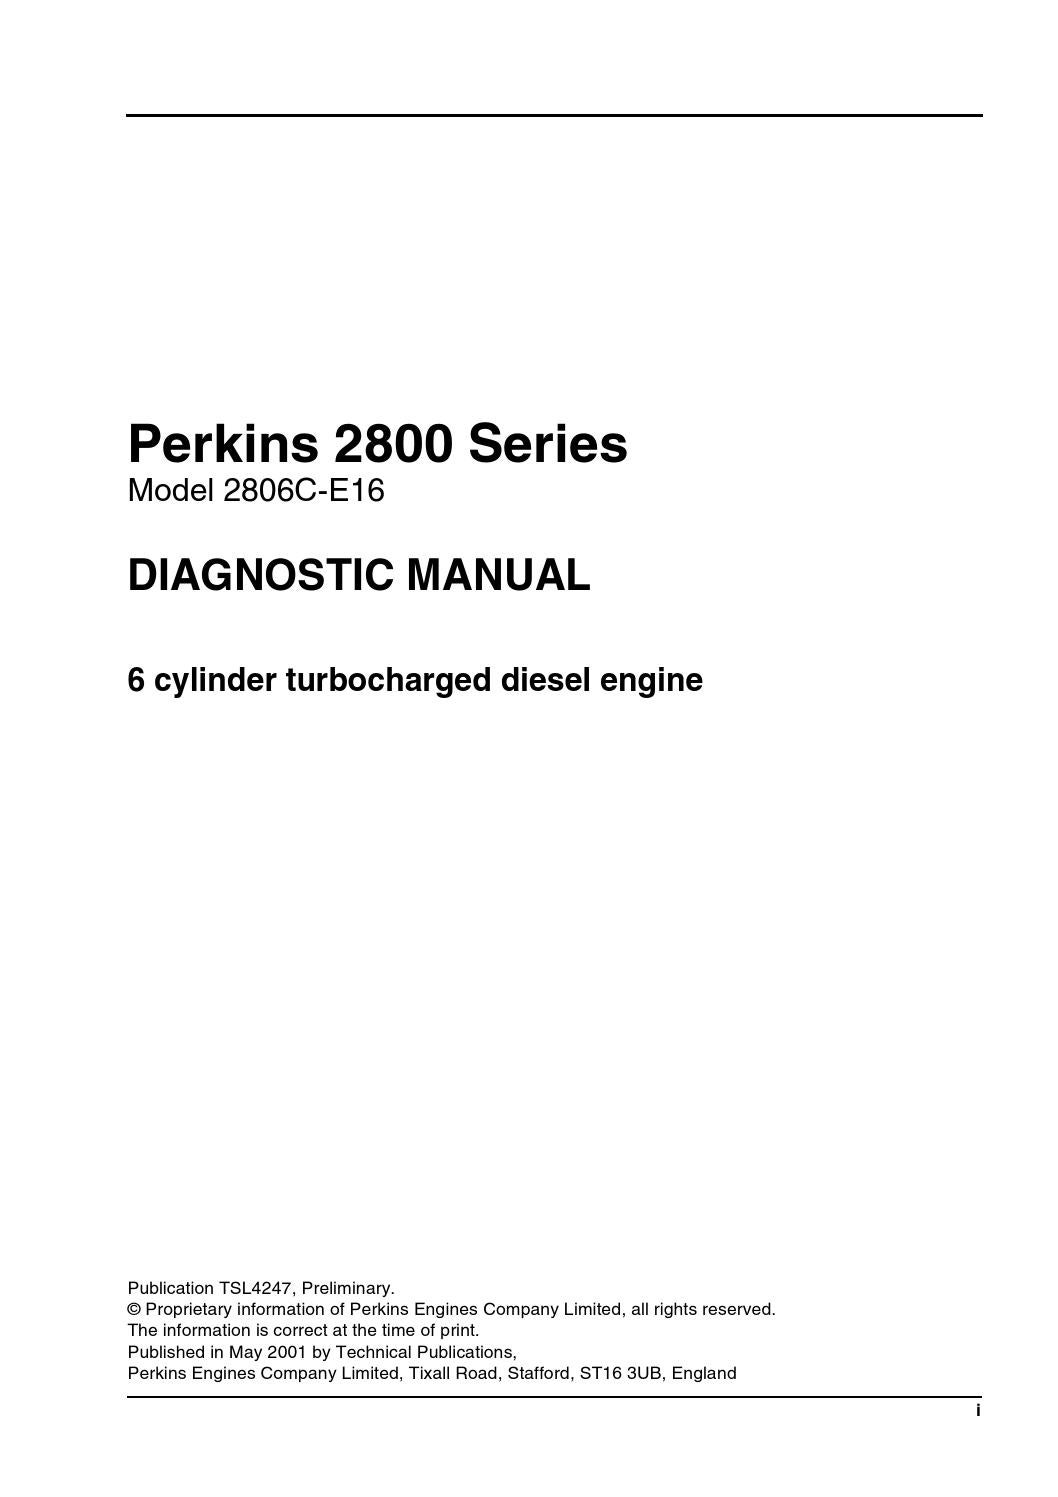 hight resolution of perkins 2800 series model 2806c e16 diagonstic manual by power generation issuu